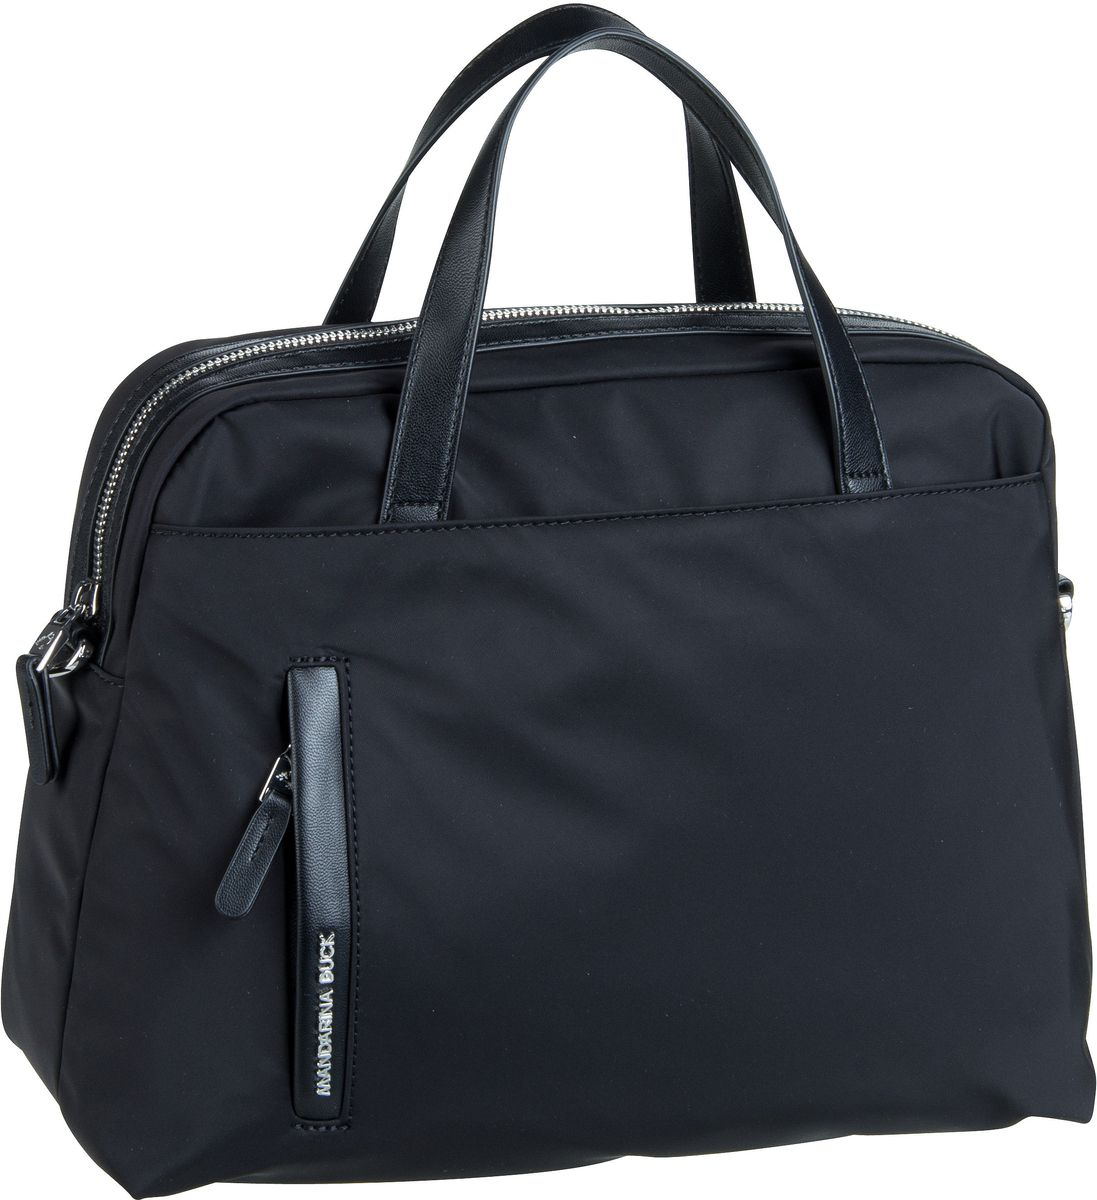 Handtasche Hunter Boston Bag VCT06 Black